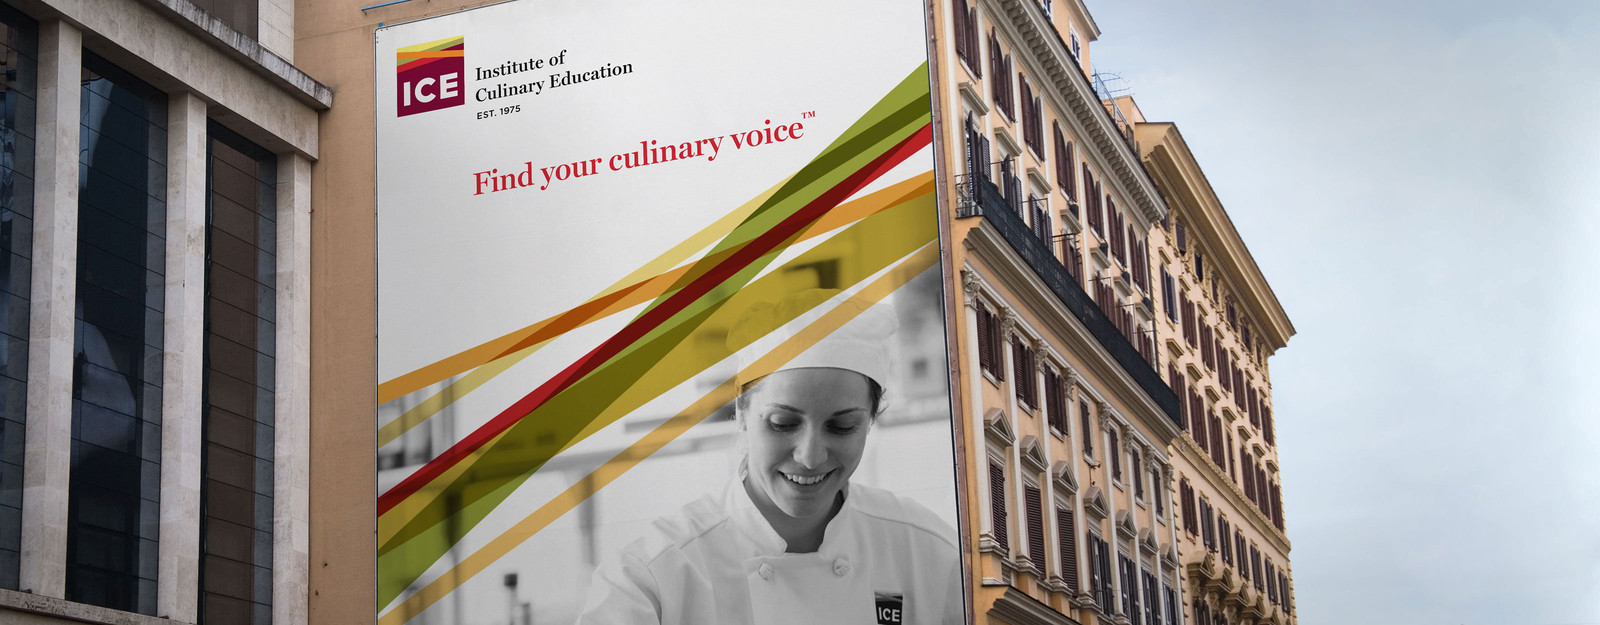 Find your culinary voice banner